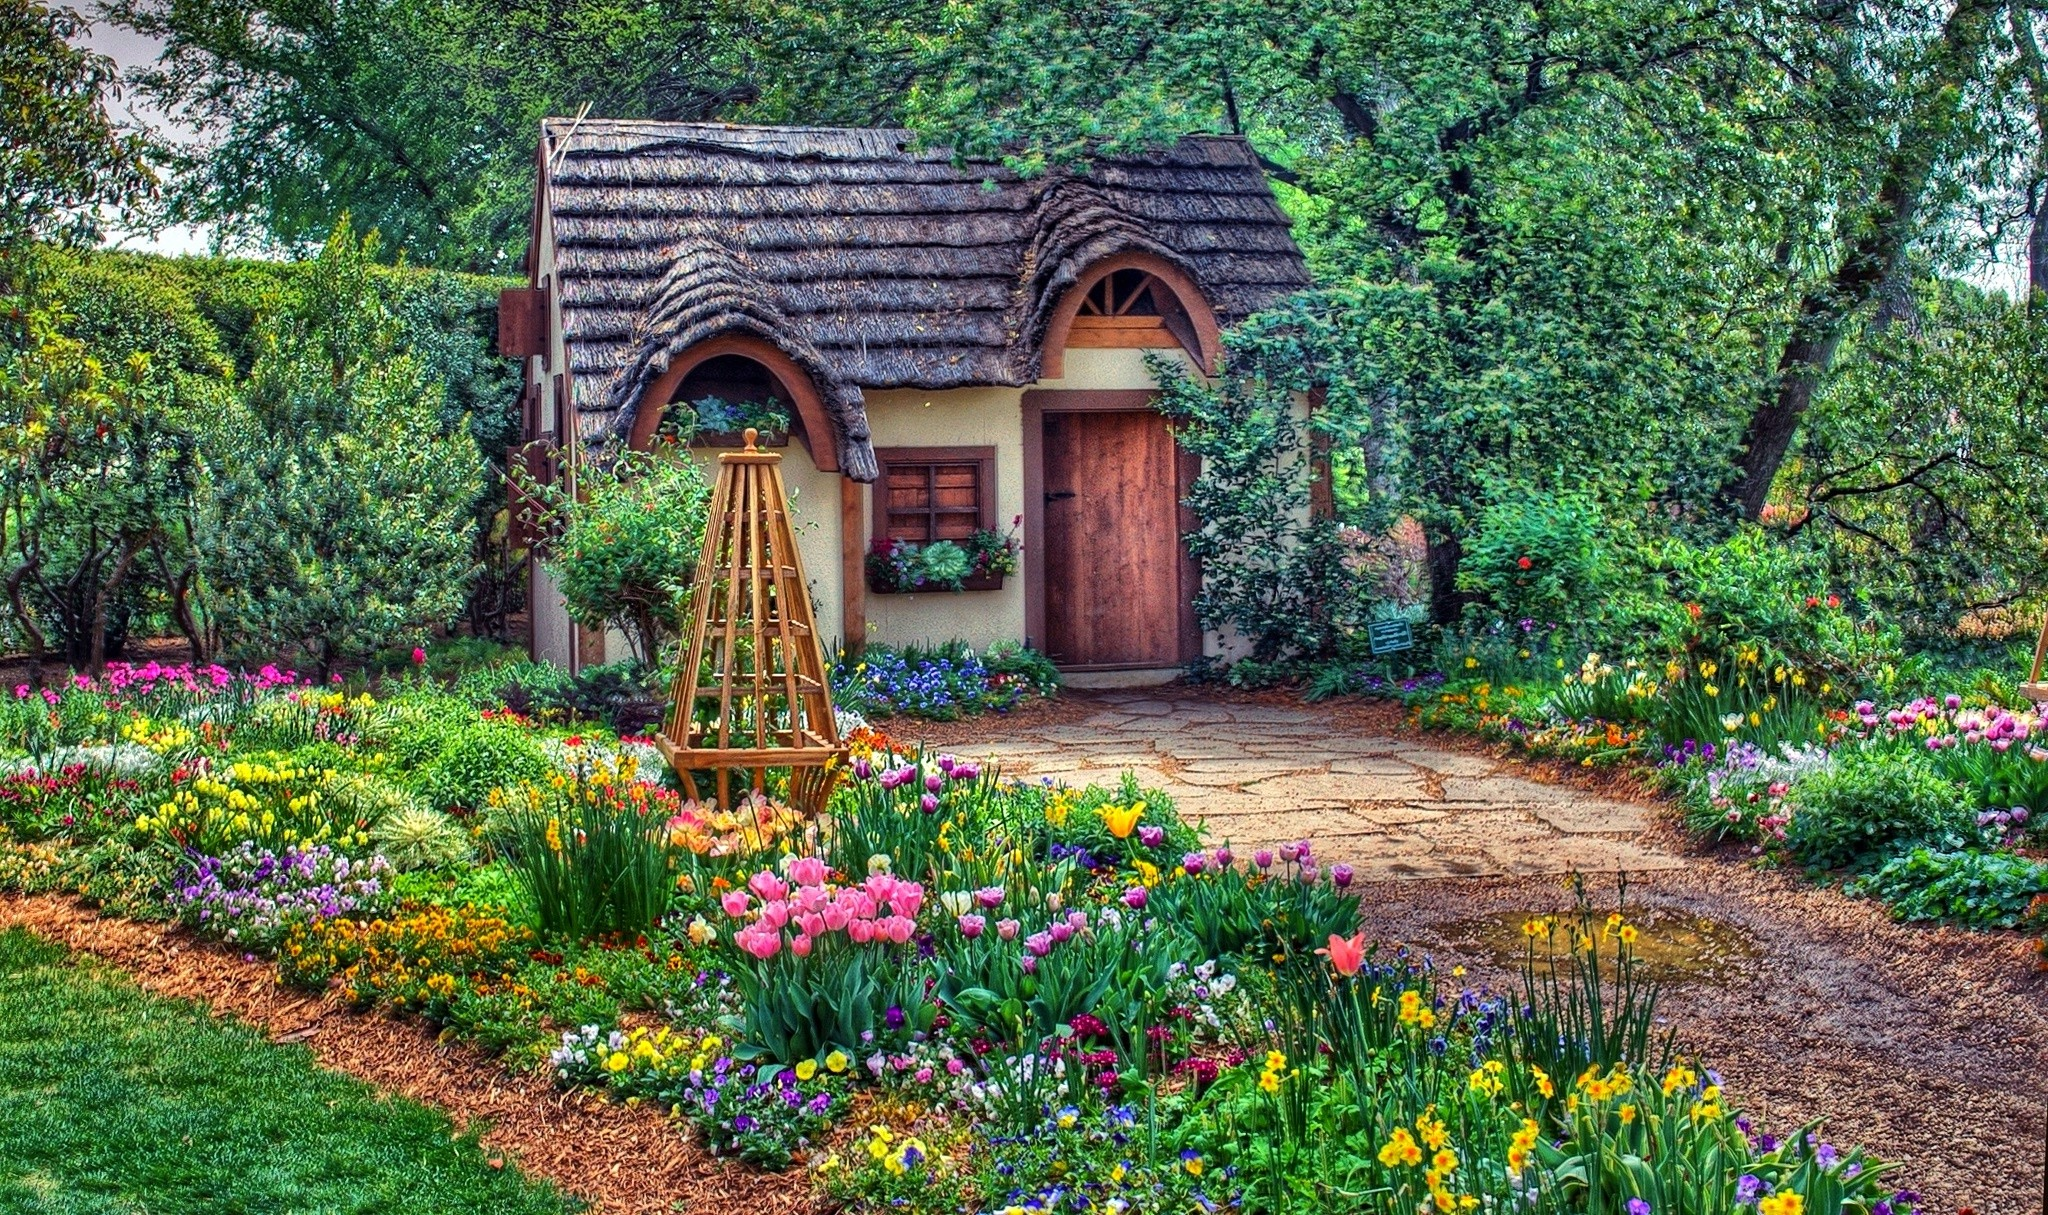 Fairy tale garden and tiny house mesebeli kert s h zik for Classic house with flower garden